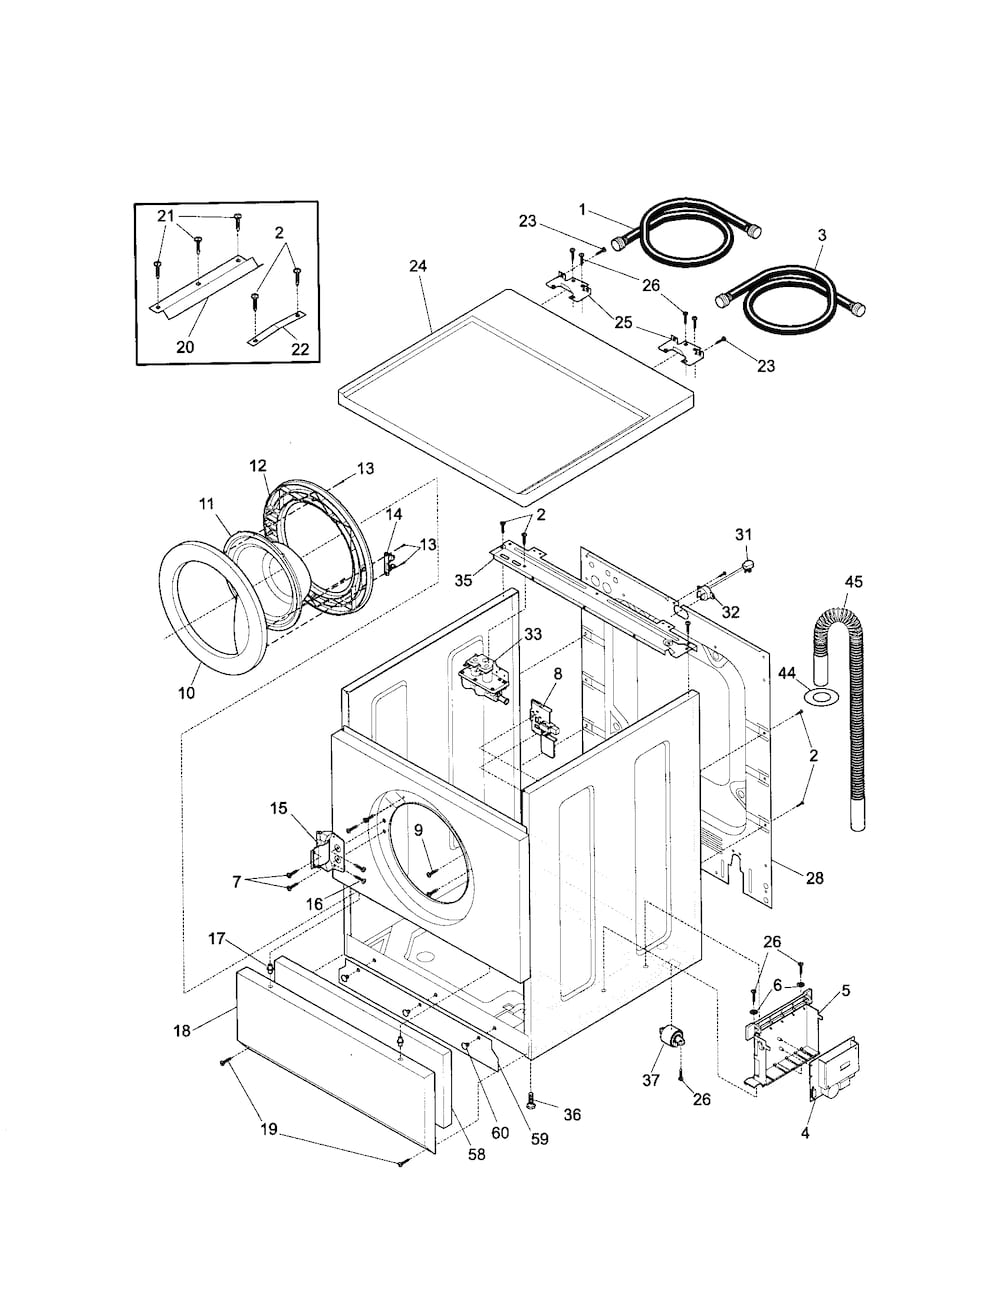 Kenmore Front Load Washer Parts | Model 41729042992 | Sears with regard to Kenmore Front Load Washer Parts Diagram